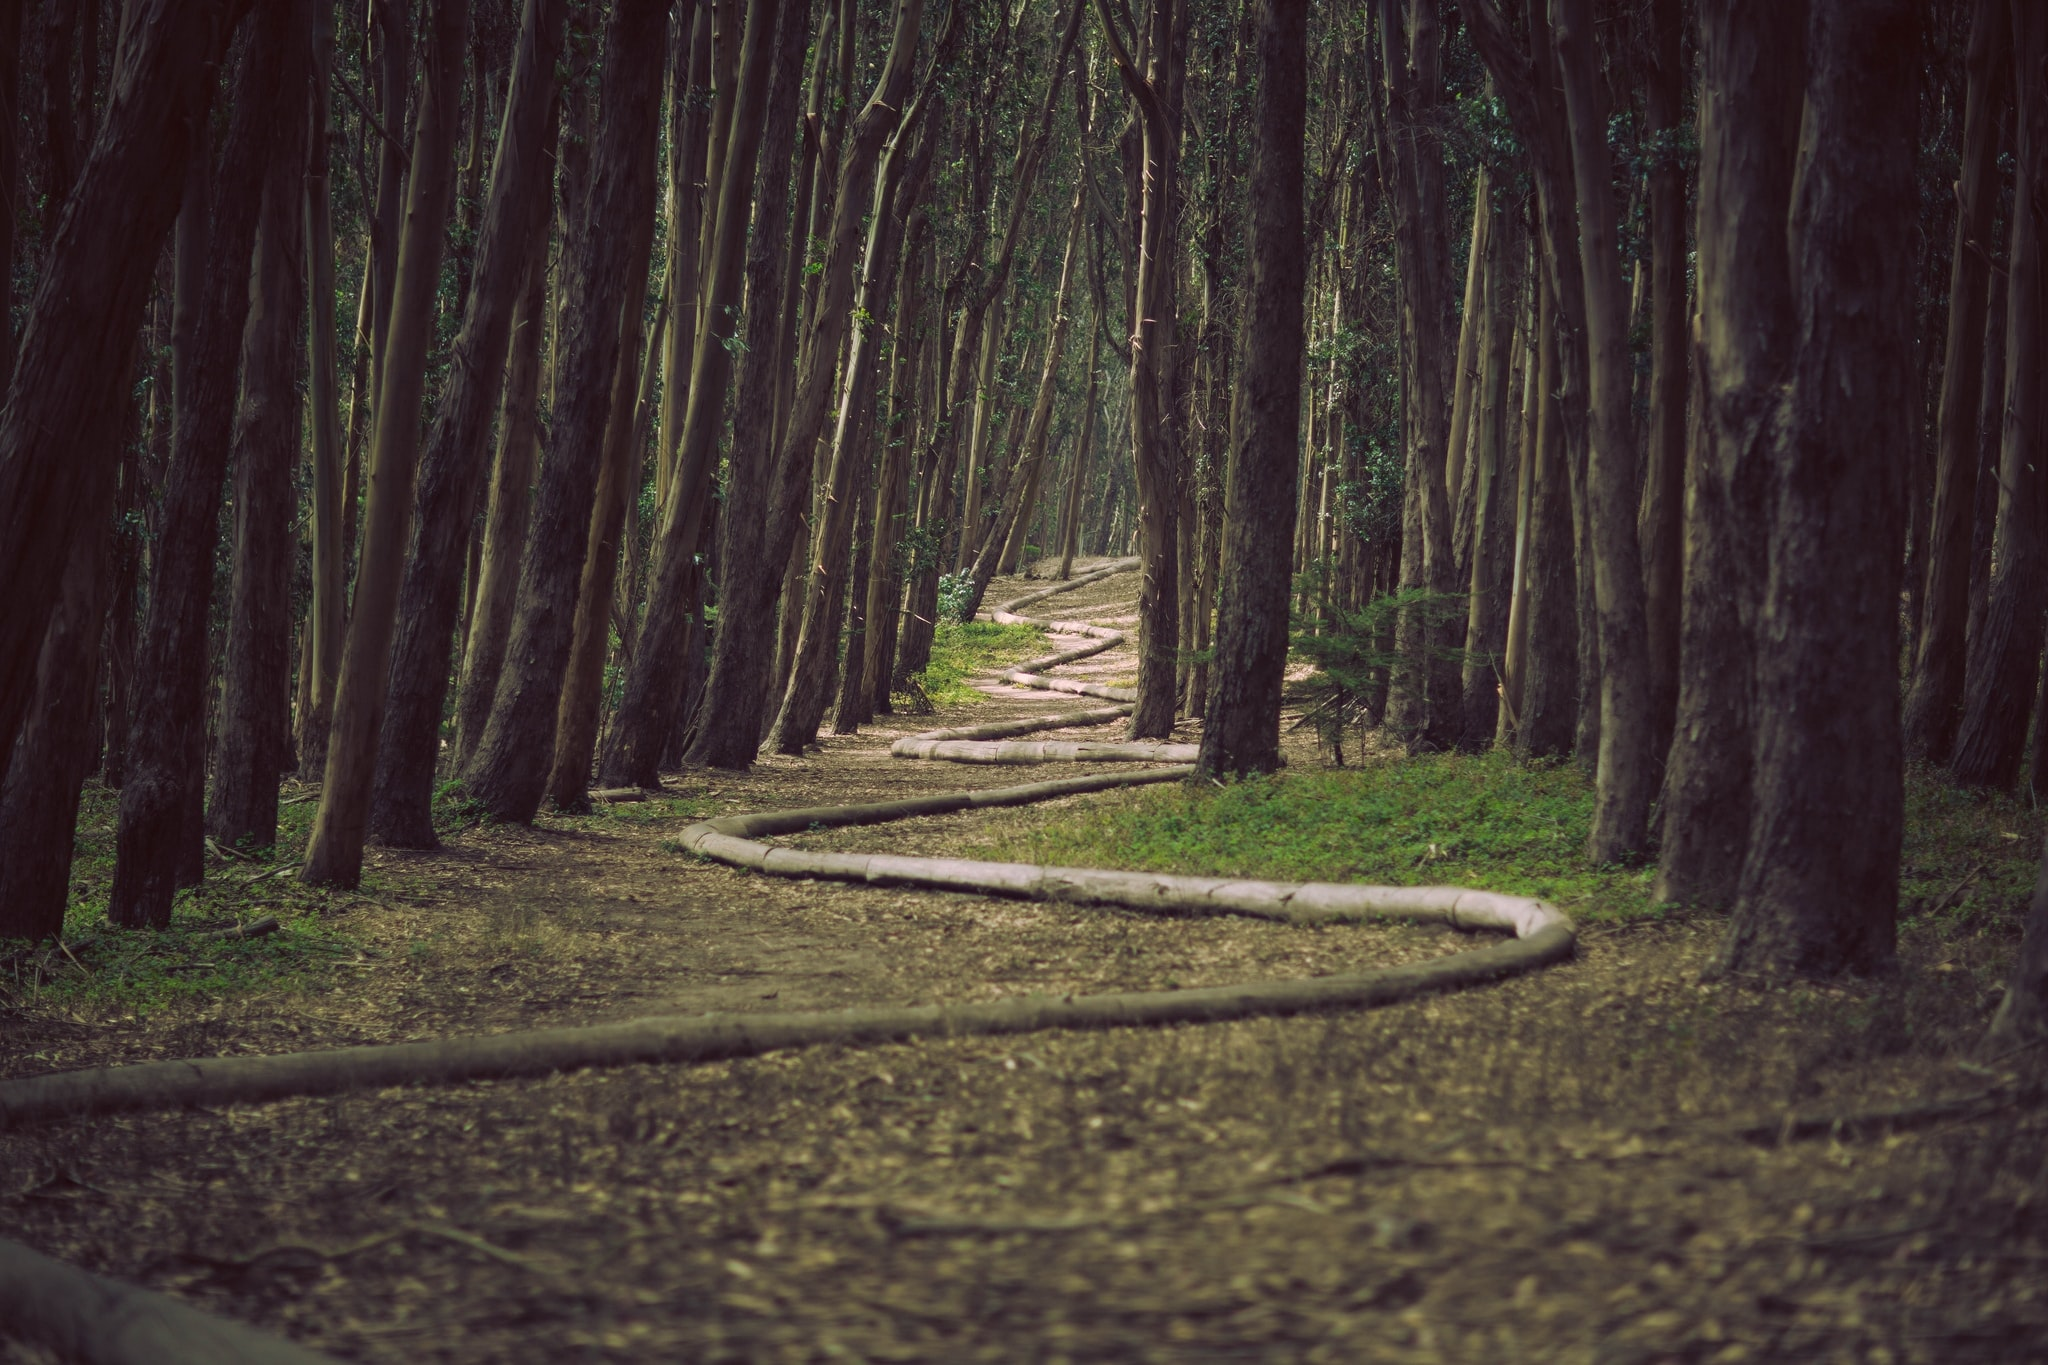 landscape photography of pathway surrounded by trees